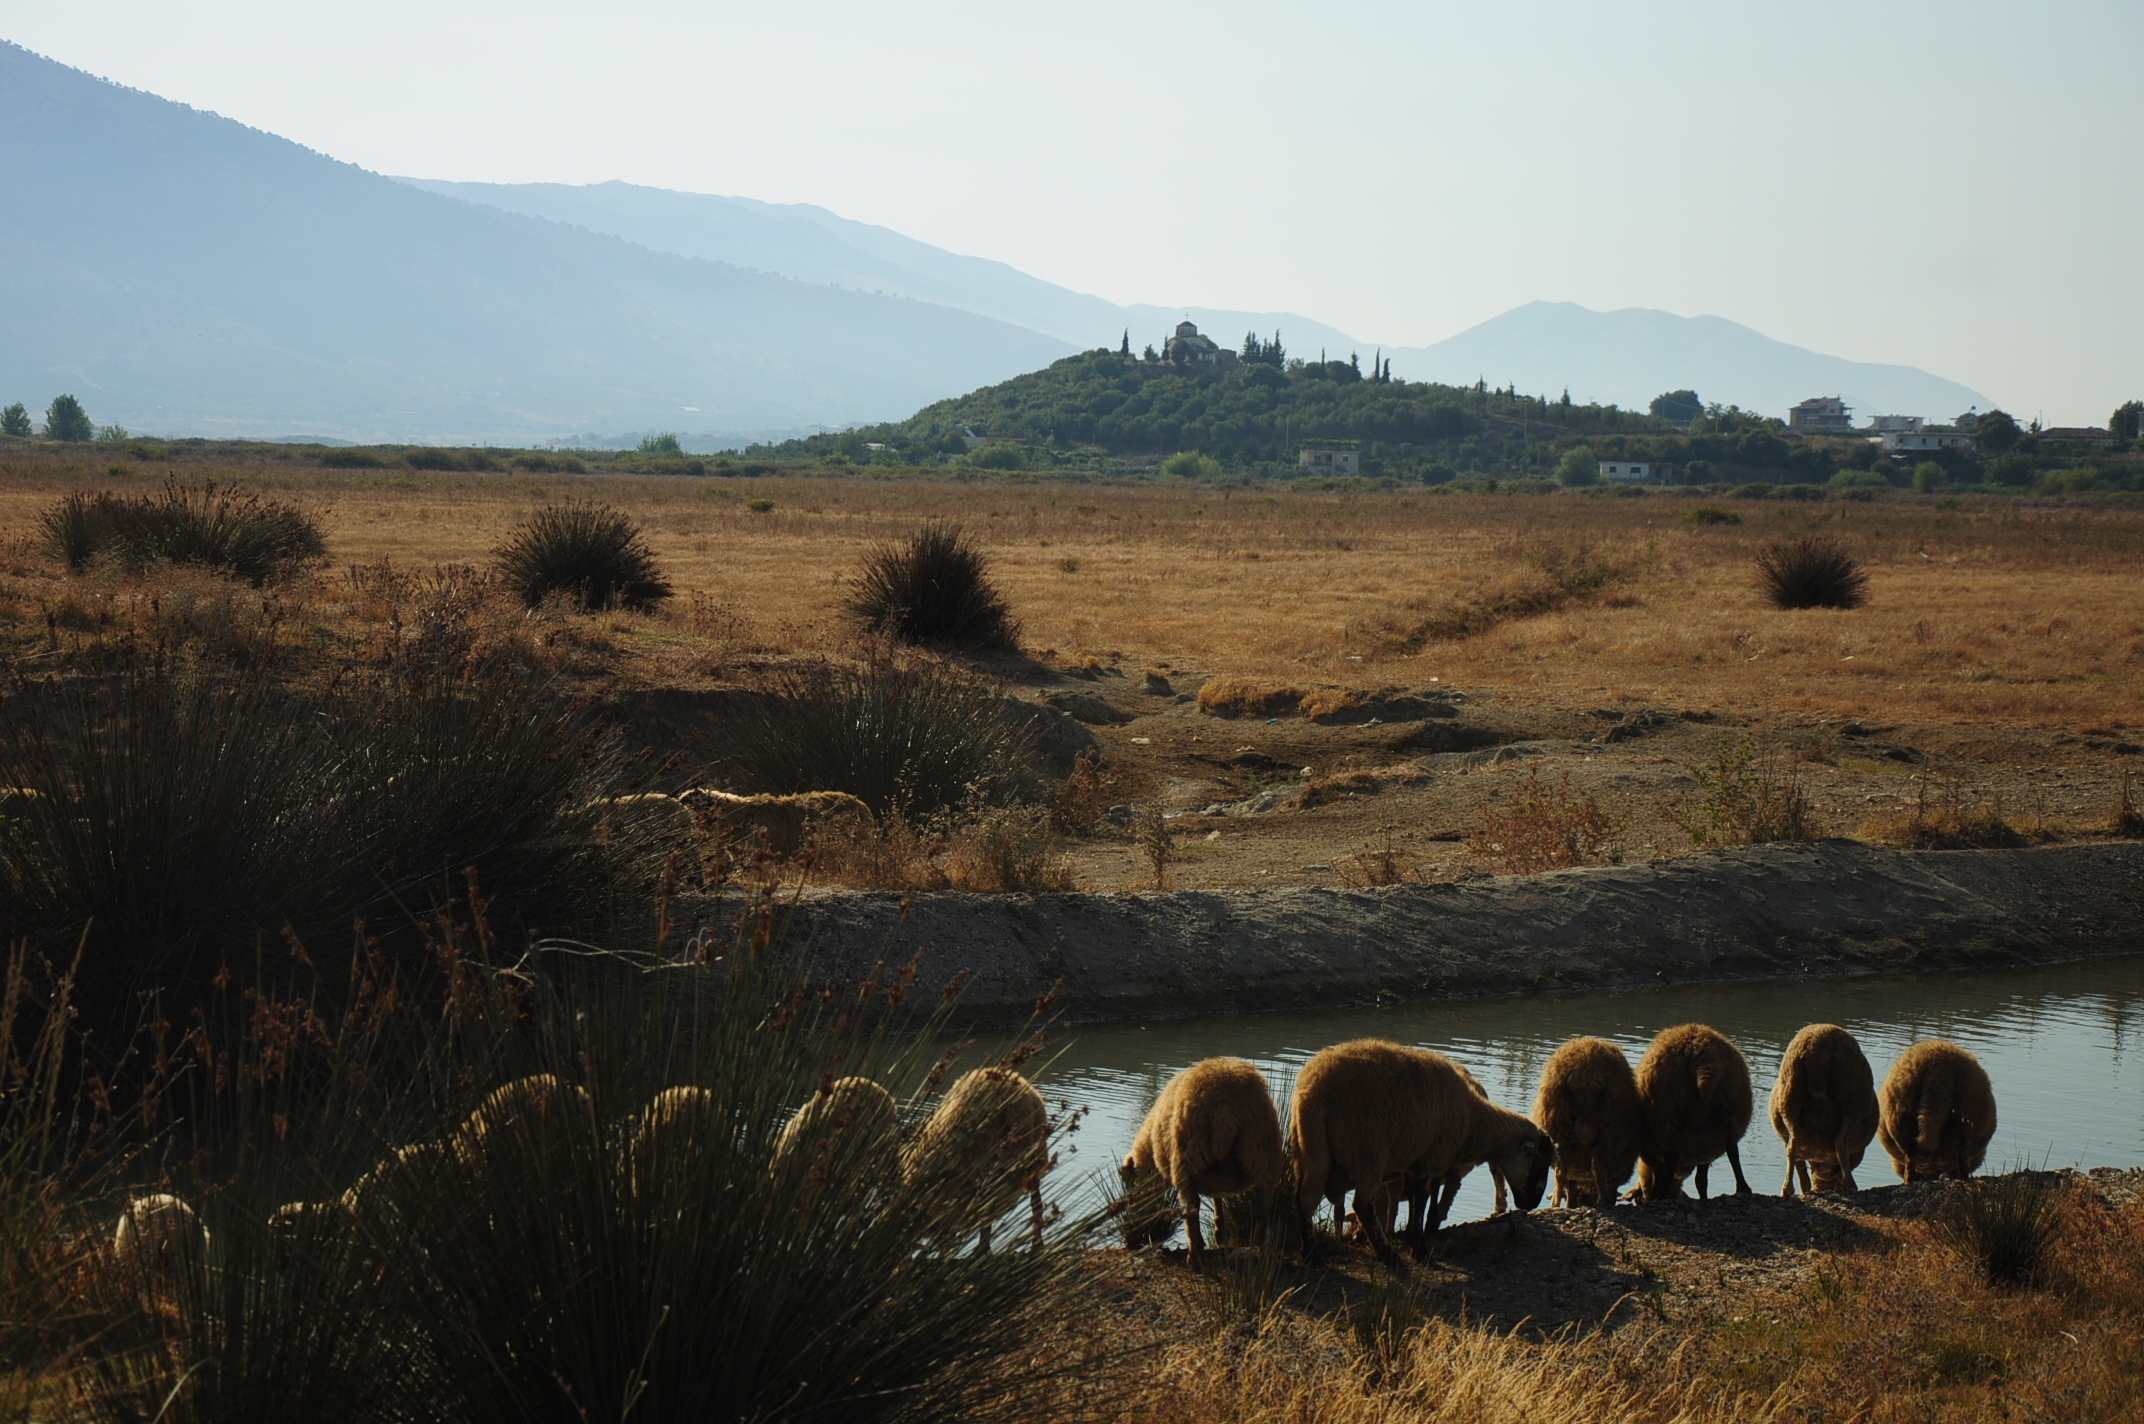 Grazing sheep near Butrint